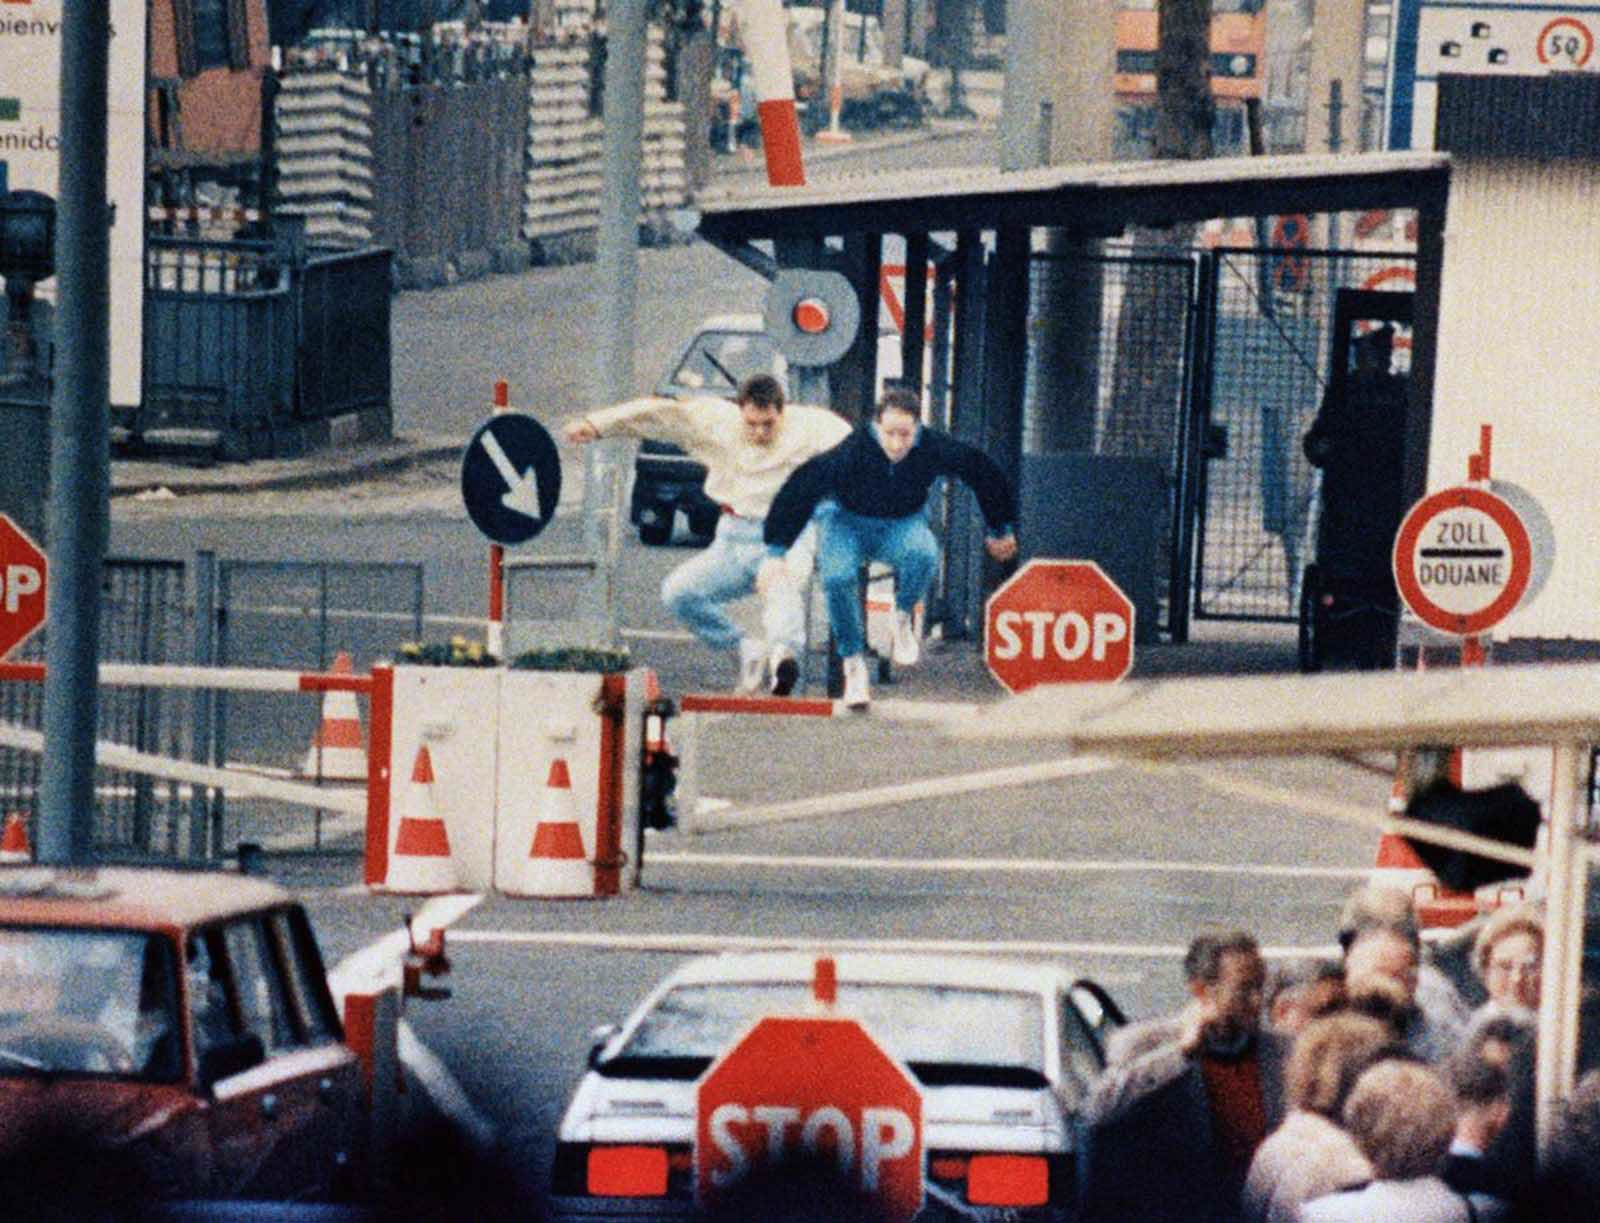 Two East Berliners jump across border barriers on the Eastern side of border checkpoint at Chaussee Street in Berlin in April of 1989. They were stopped by gun wielding East German border guards and arrested while trying to escape into West Berlin. People in the foreground, still in East Berlin, wait for permits to visit the West.